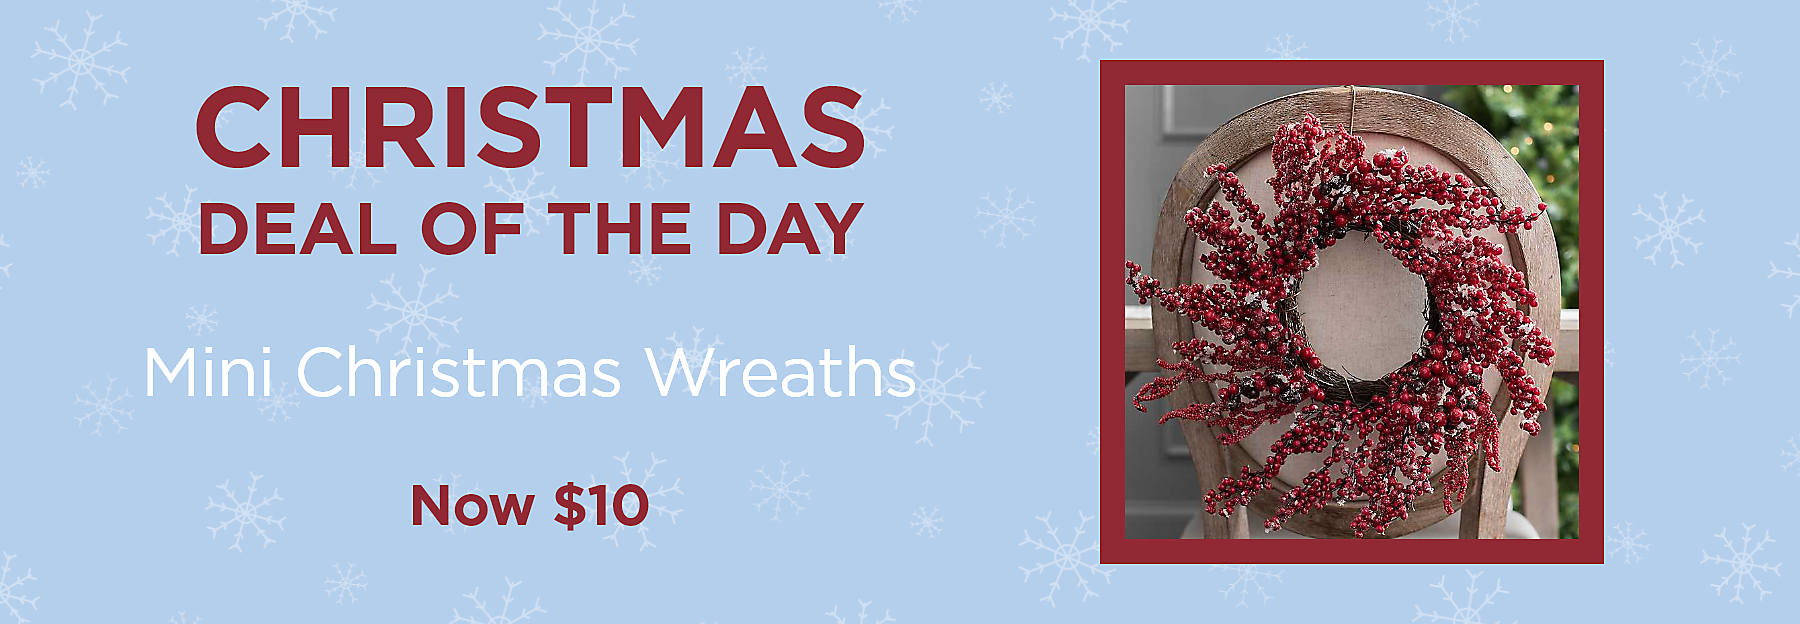 Christmas Deal of the Day Mini Christmas Wreaths Now $10